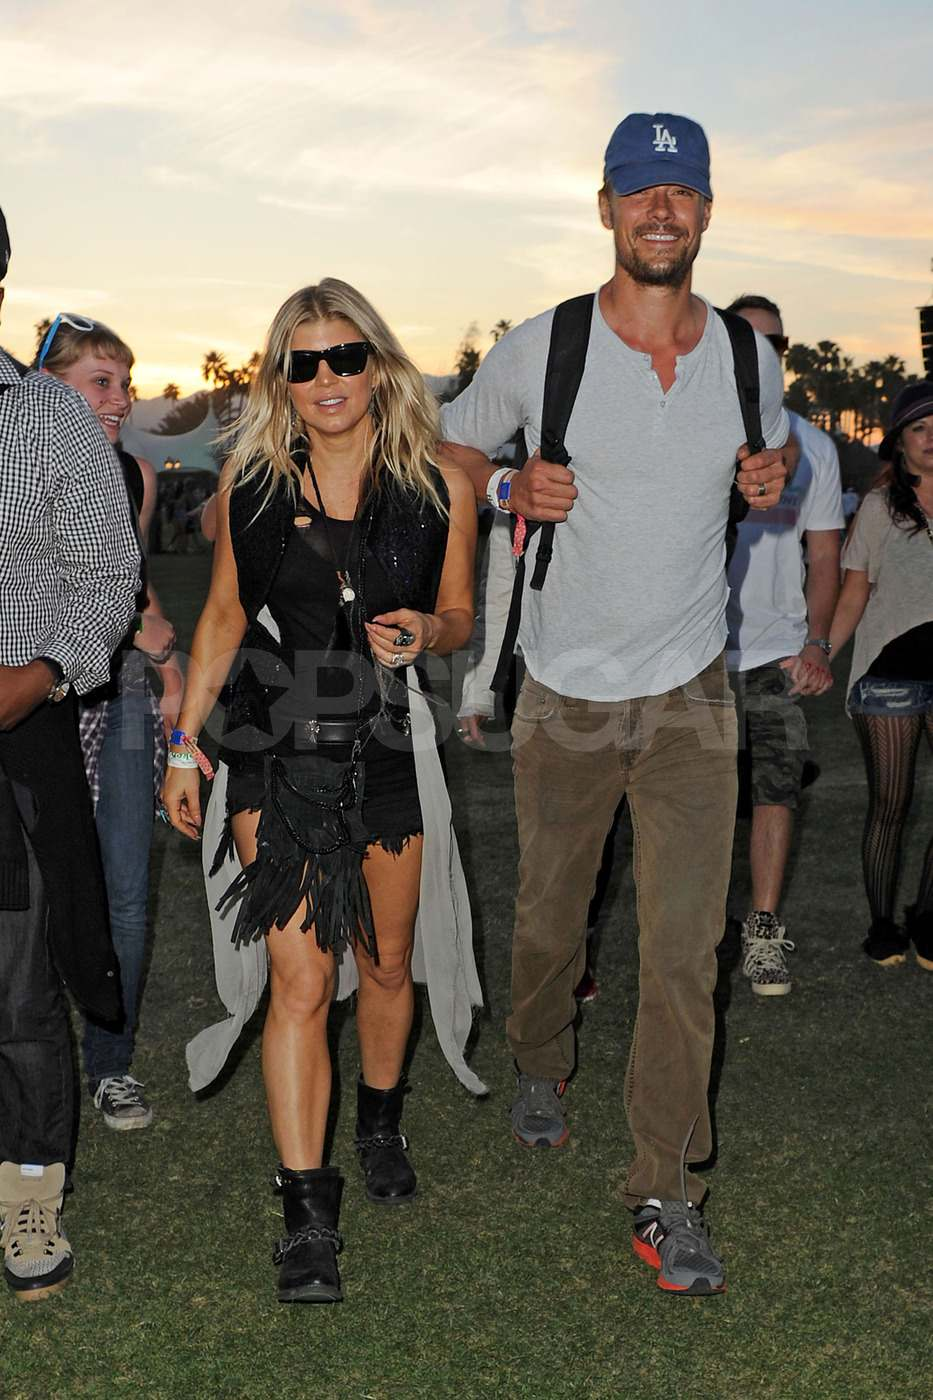 Fergie and Josh Duhamel popped up at the festival on the final day.